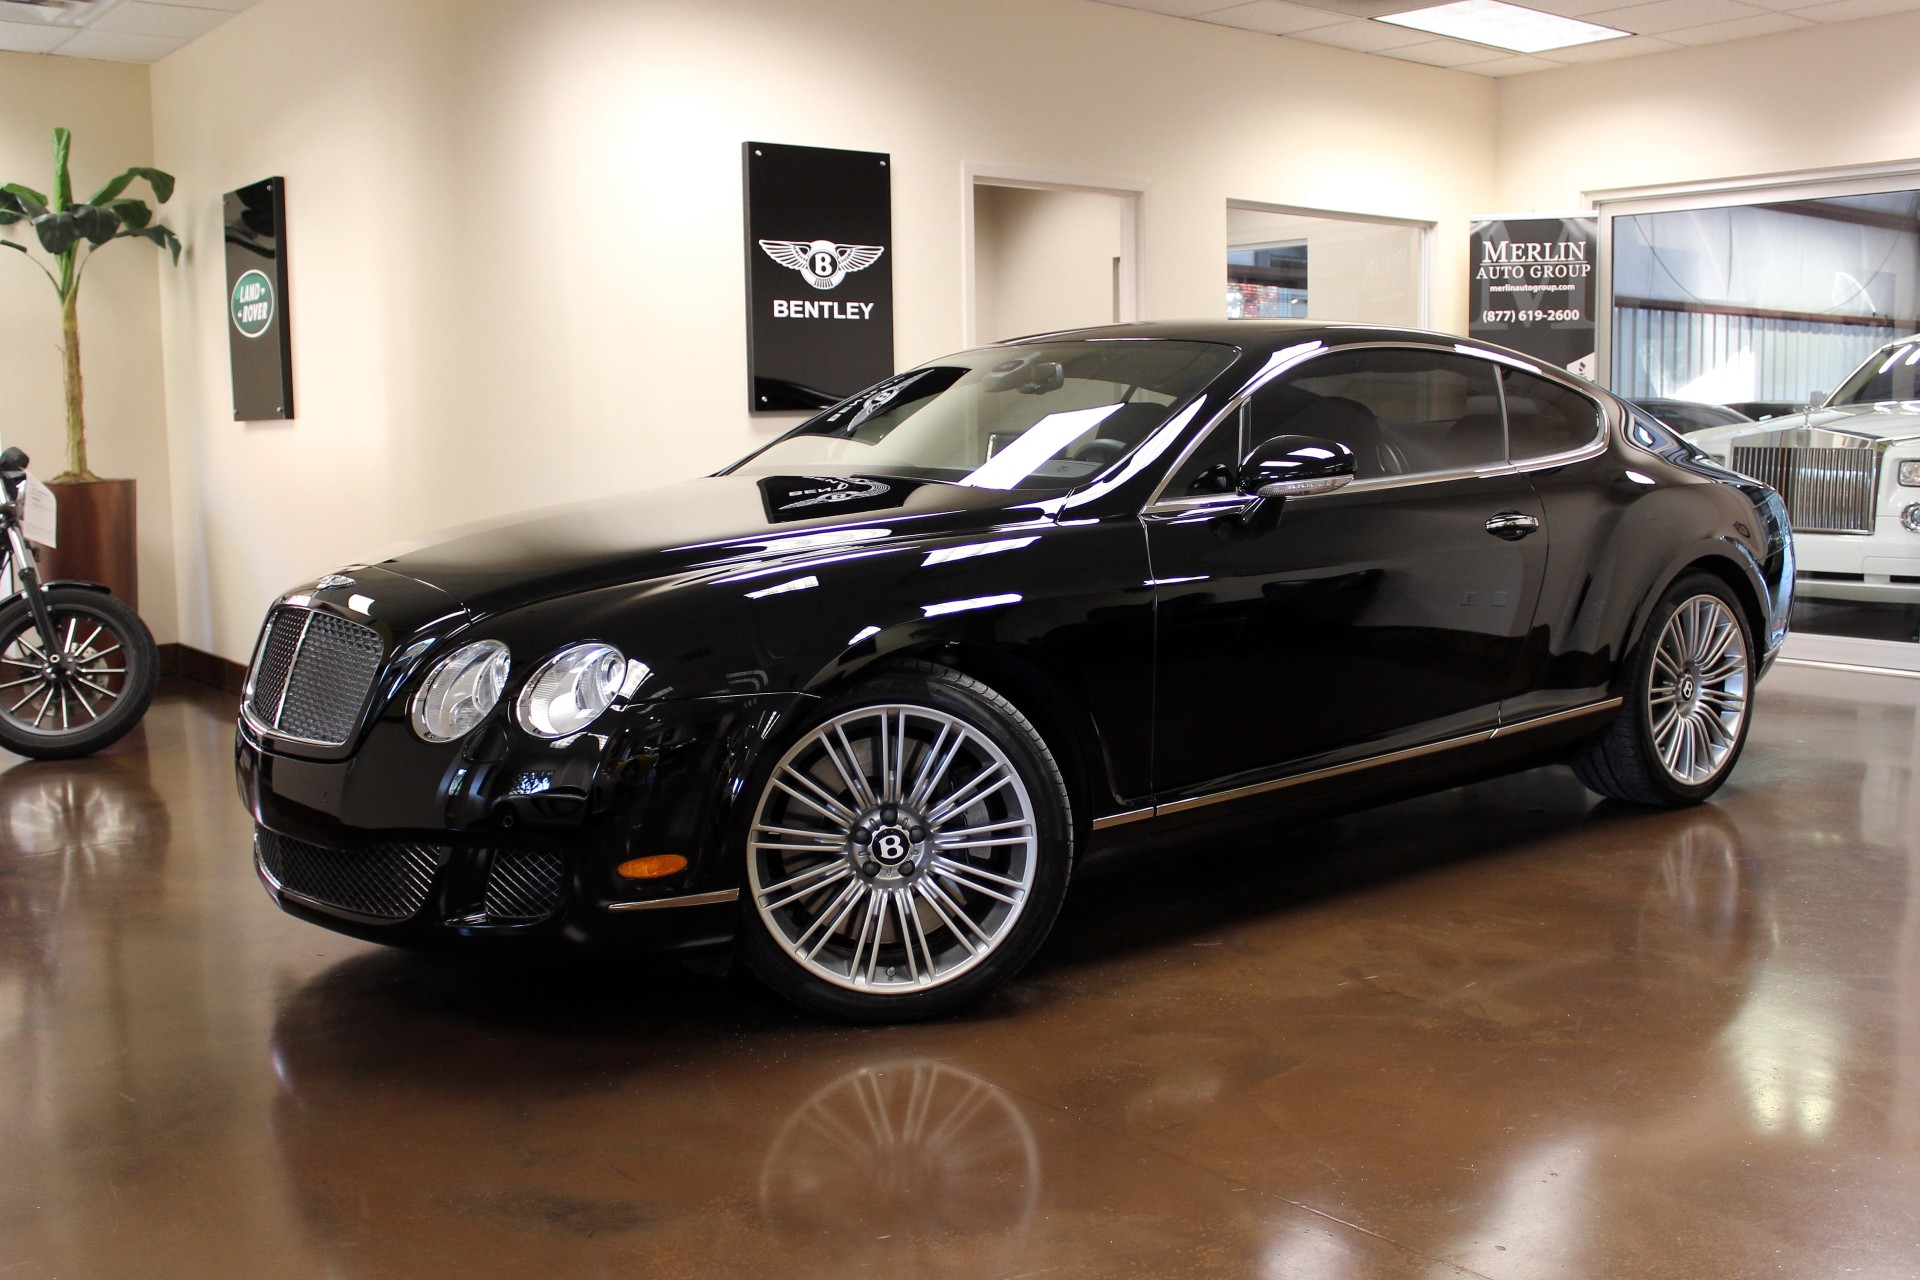 used 2008 bentley continental gt speed stock p2941 ultra luxury car from merlin auto group. Black Bedroom Furniture Sets. Home Design Ideas